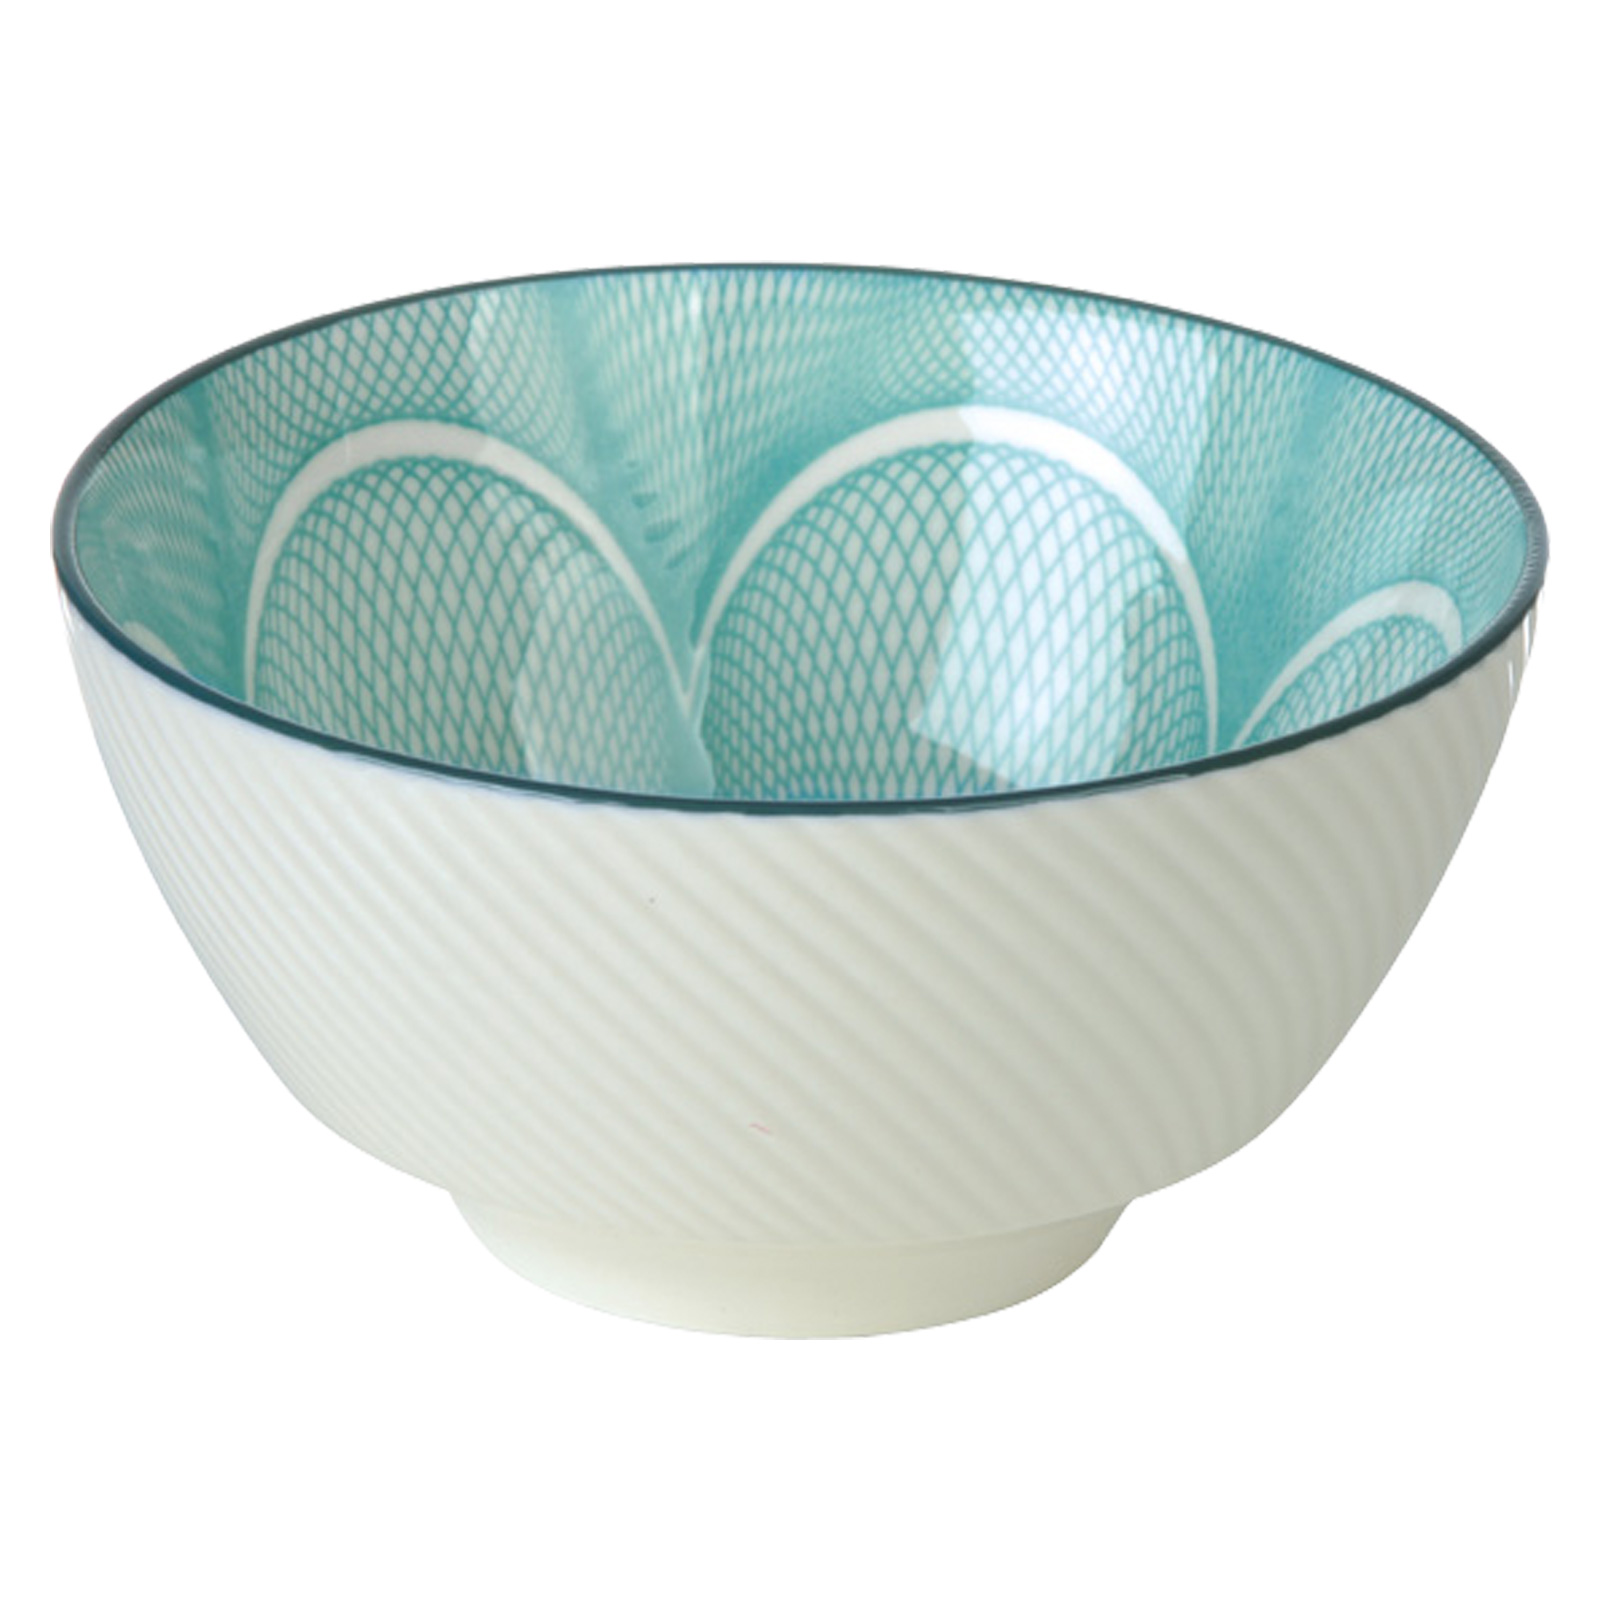 Set of 4 Spyro Rice Bowls Blue by BIA